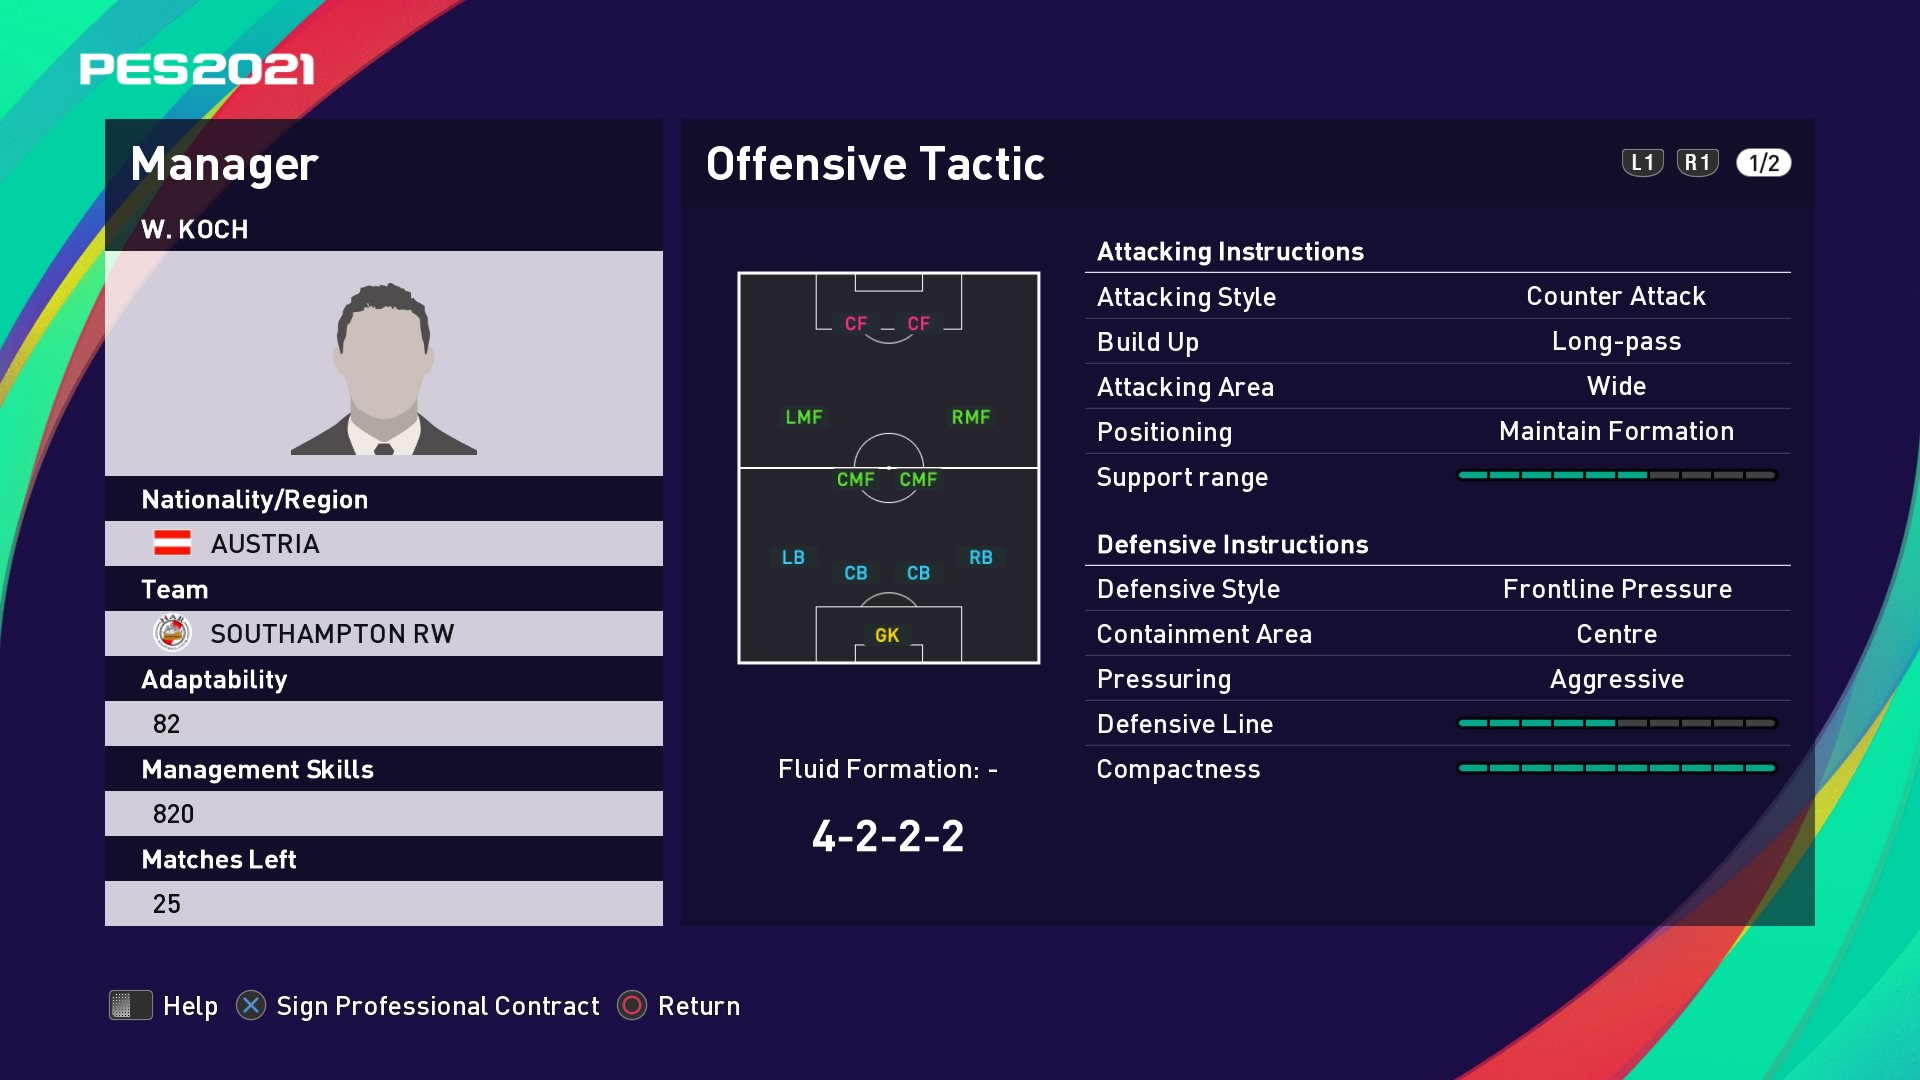 W. Koch (Ralph Hasenhüttl) Offensive Tactic in PES 2021 myClub